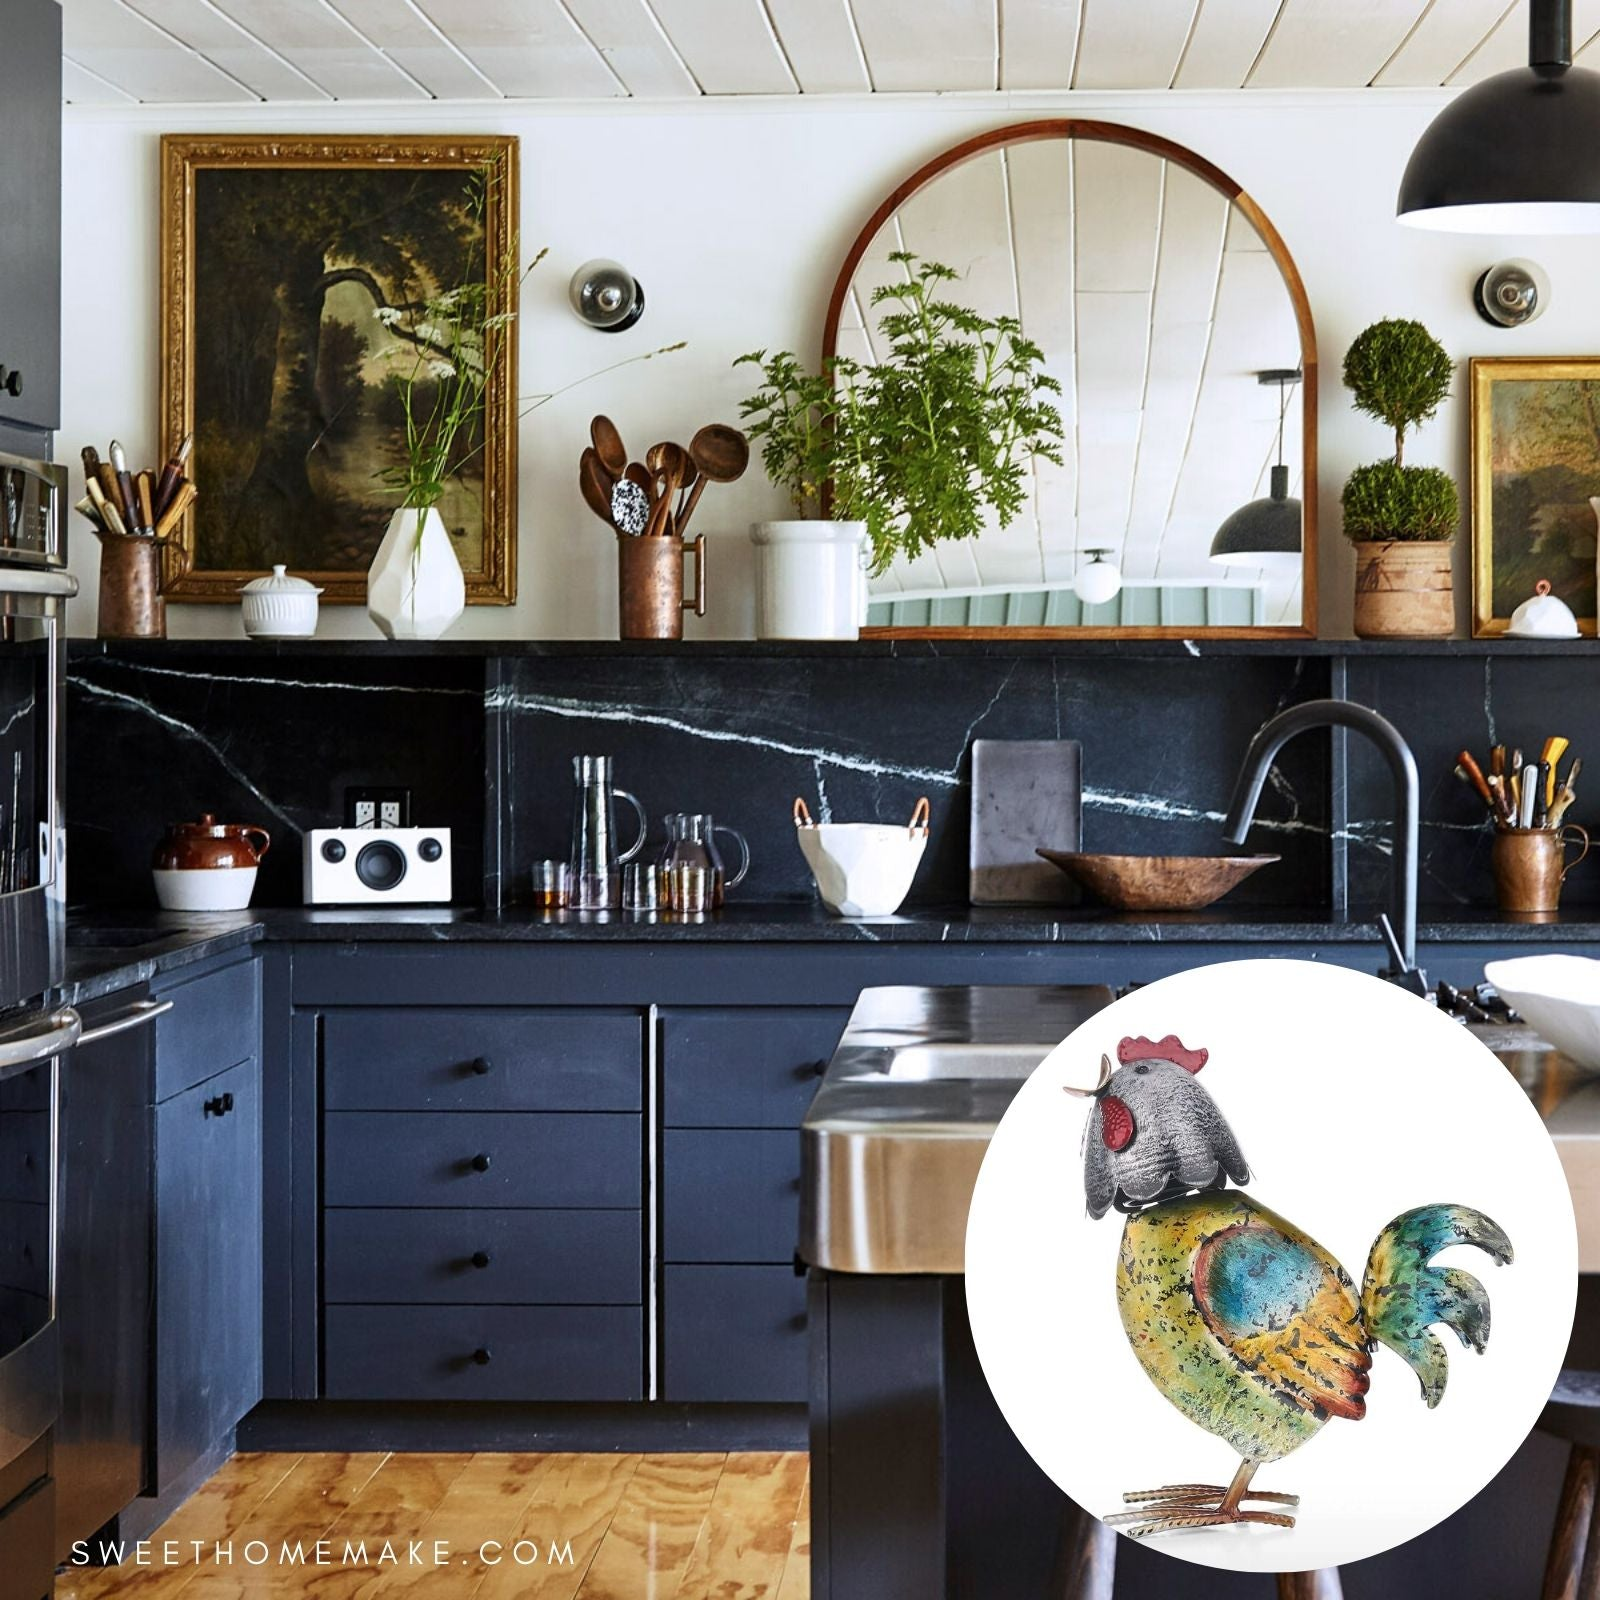 Rooster Statue for Kitchen Decor Ideas